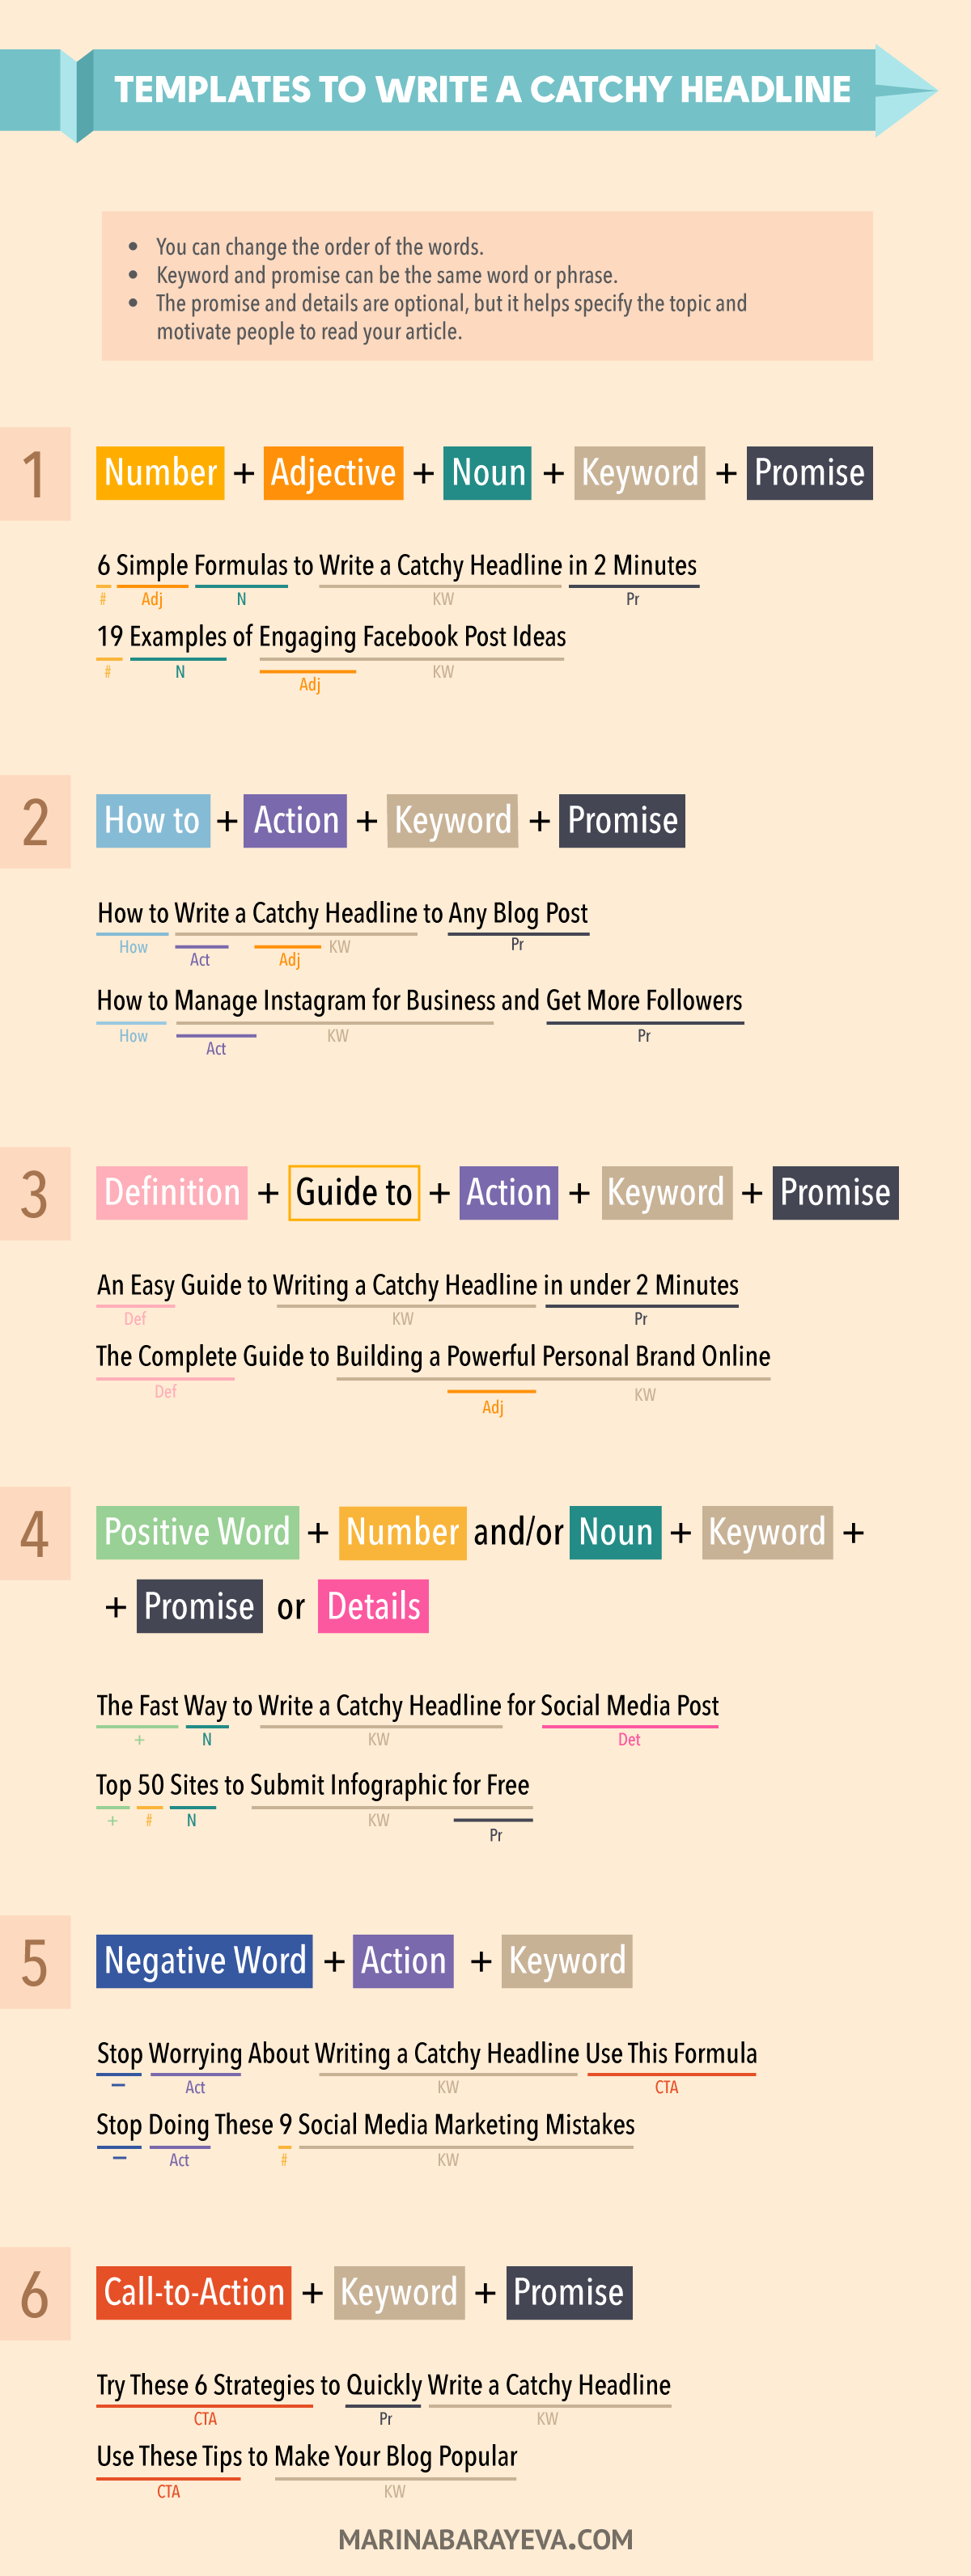 Looking for an easy way to write an attractive title for your blog post or article? Here are 6 templates to quickly write a catchy headline. They will help you easily to write an attractive title for a blog post or social media message. #blogging #contentmarketing #bloggingtips #creativeentrepreneur #socialmedia #socialmediatips #socialmediamarketing #smm #copywriting #writing